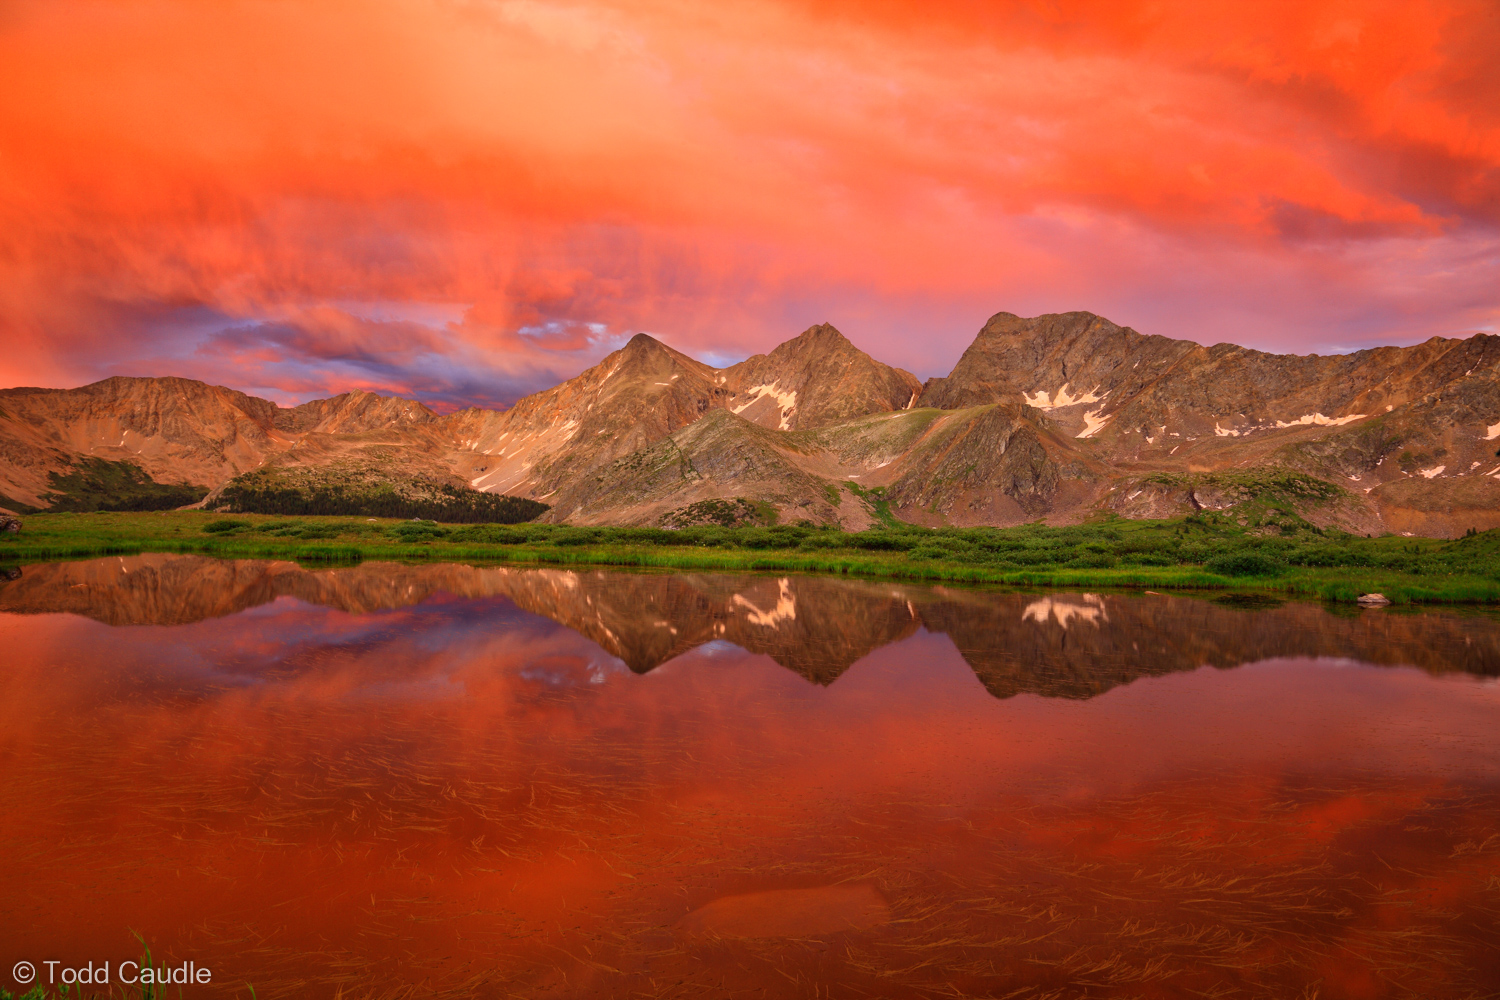 One of the most extraordinary sunsets this photographer has ever seen fills the skies over the Three Apostles with crimson clouds...